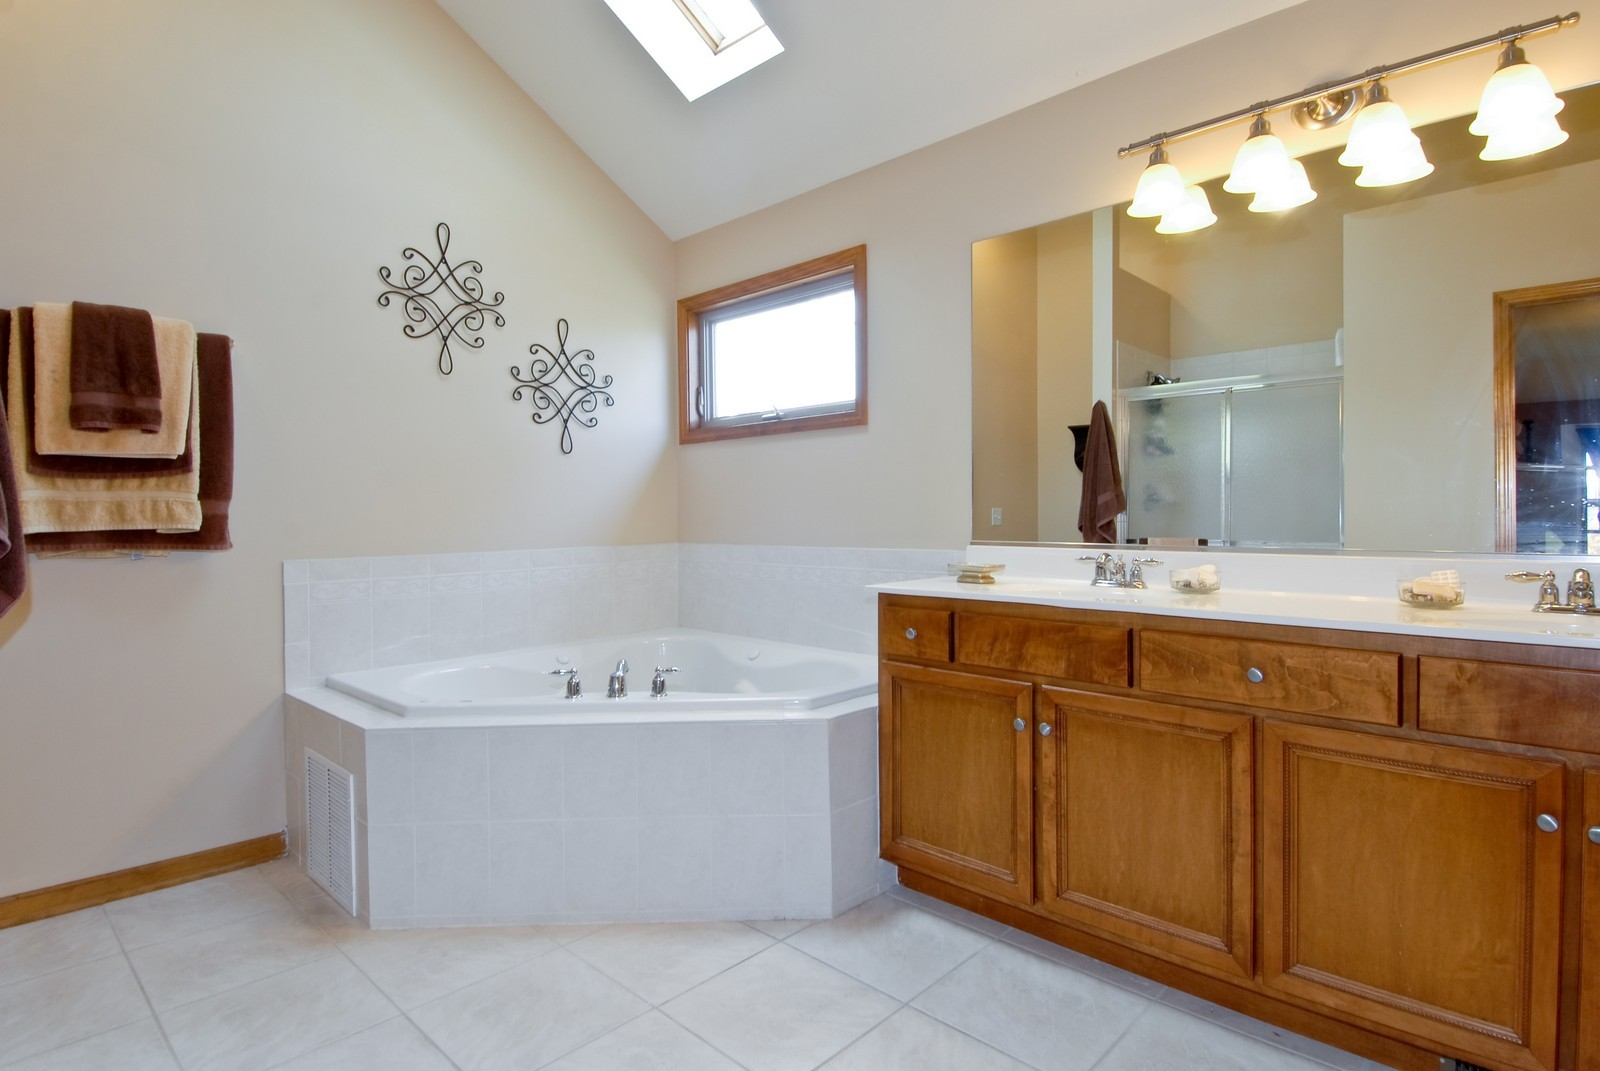 Real Estate Photography - 13232 Birdseye Court, Plainfield, IL, 60585 - Location 2